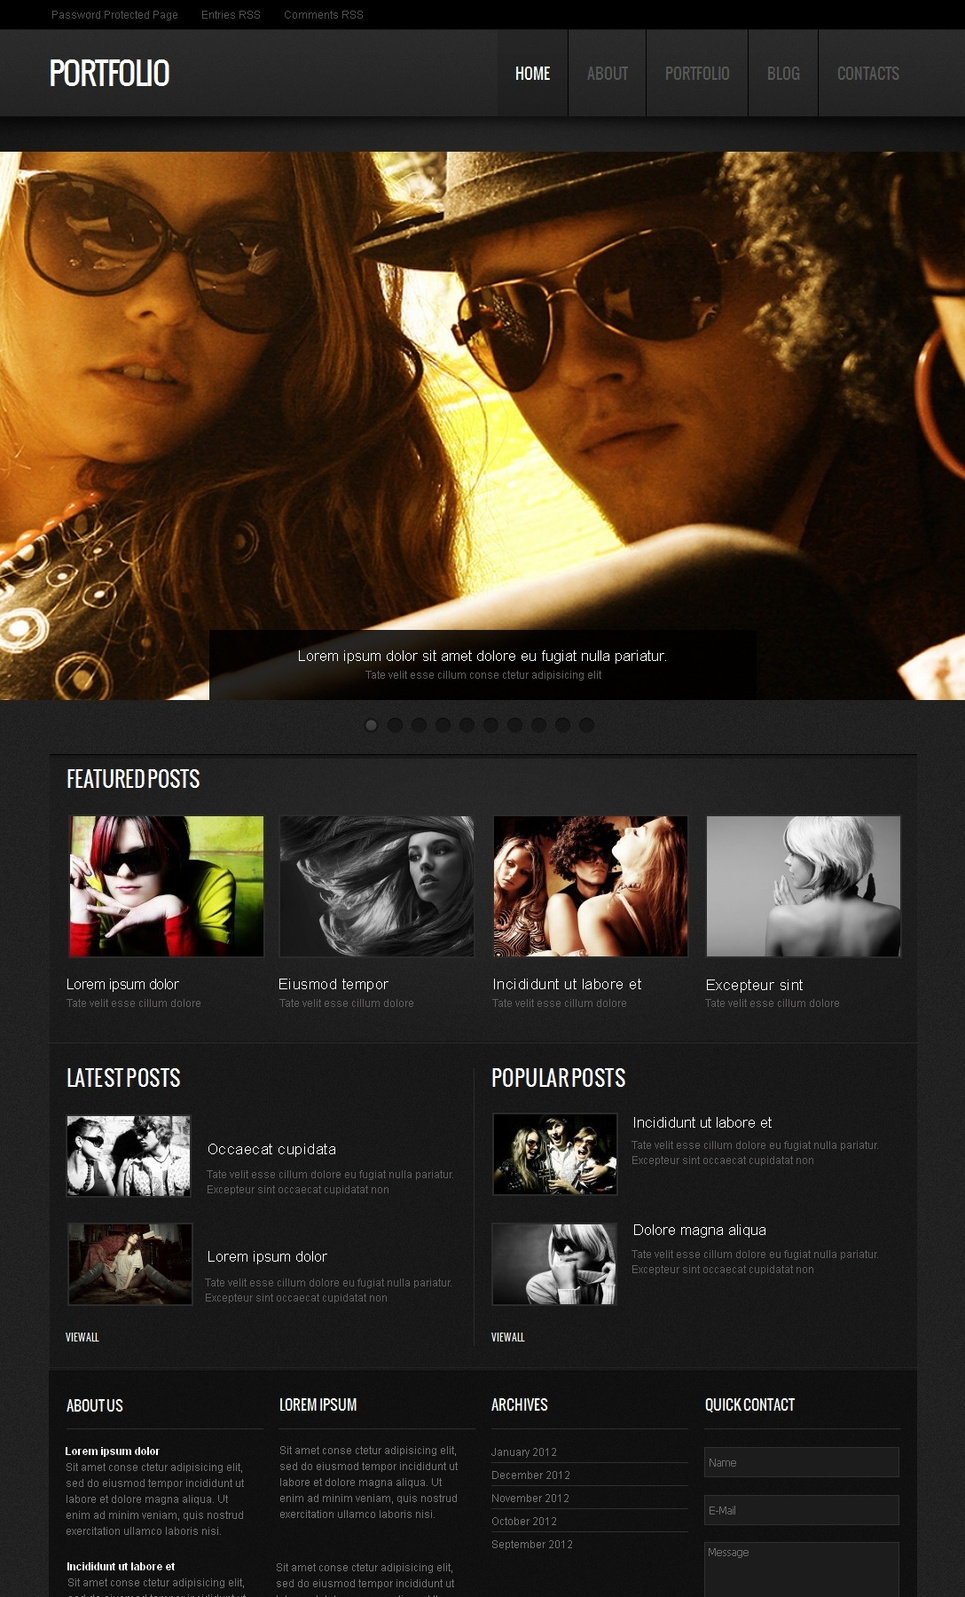 Portfolio Website Template with Retro Looking Photo Slider - image